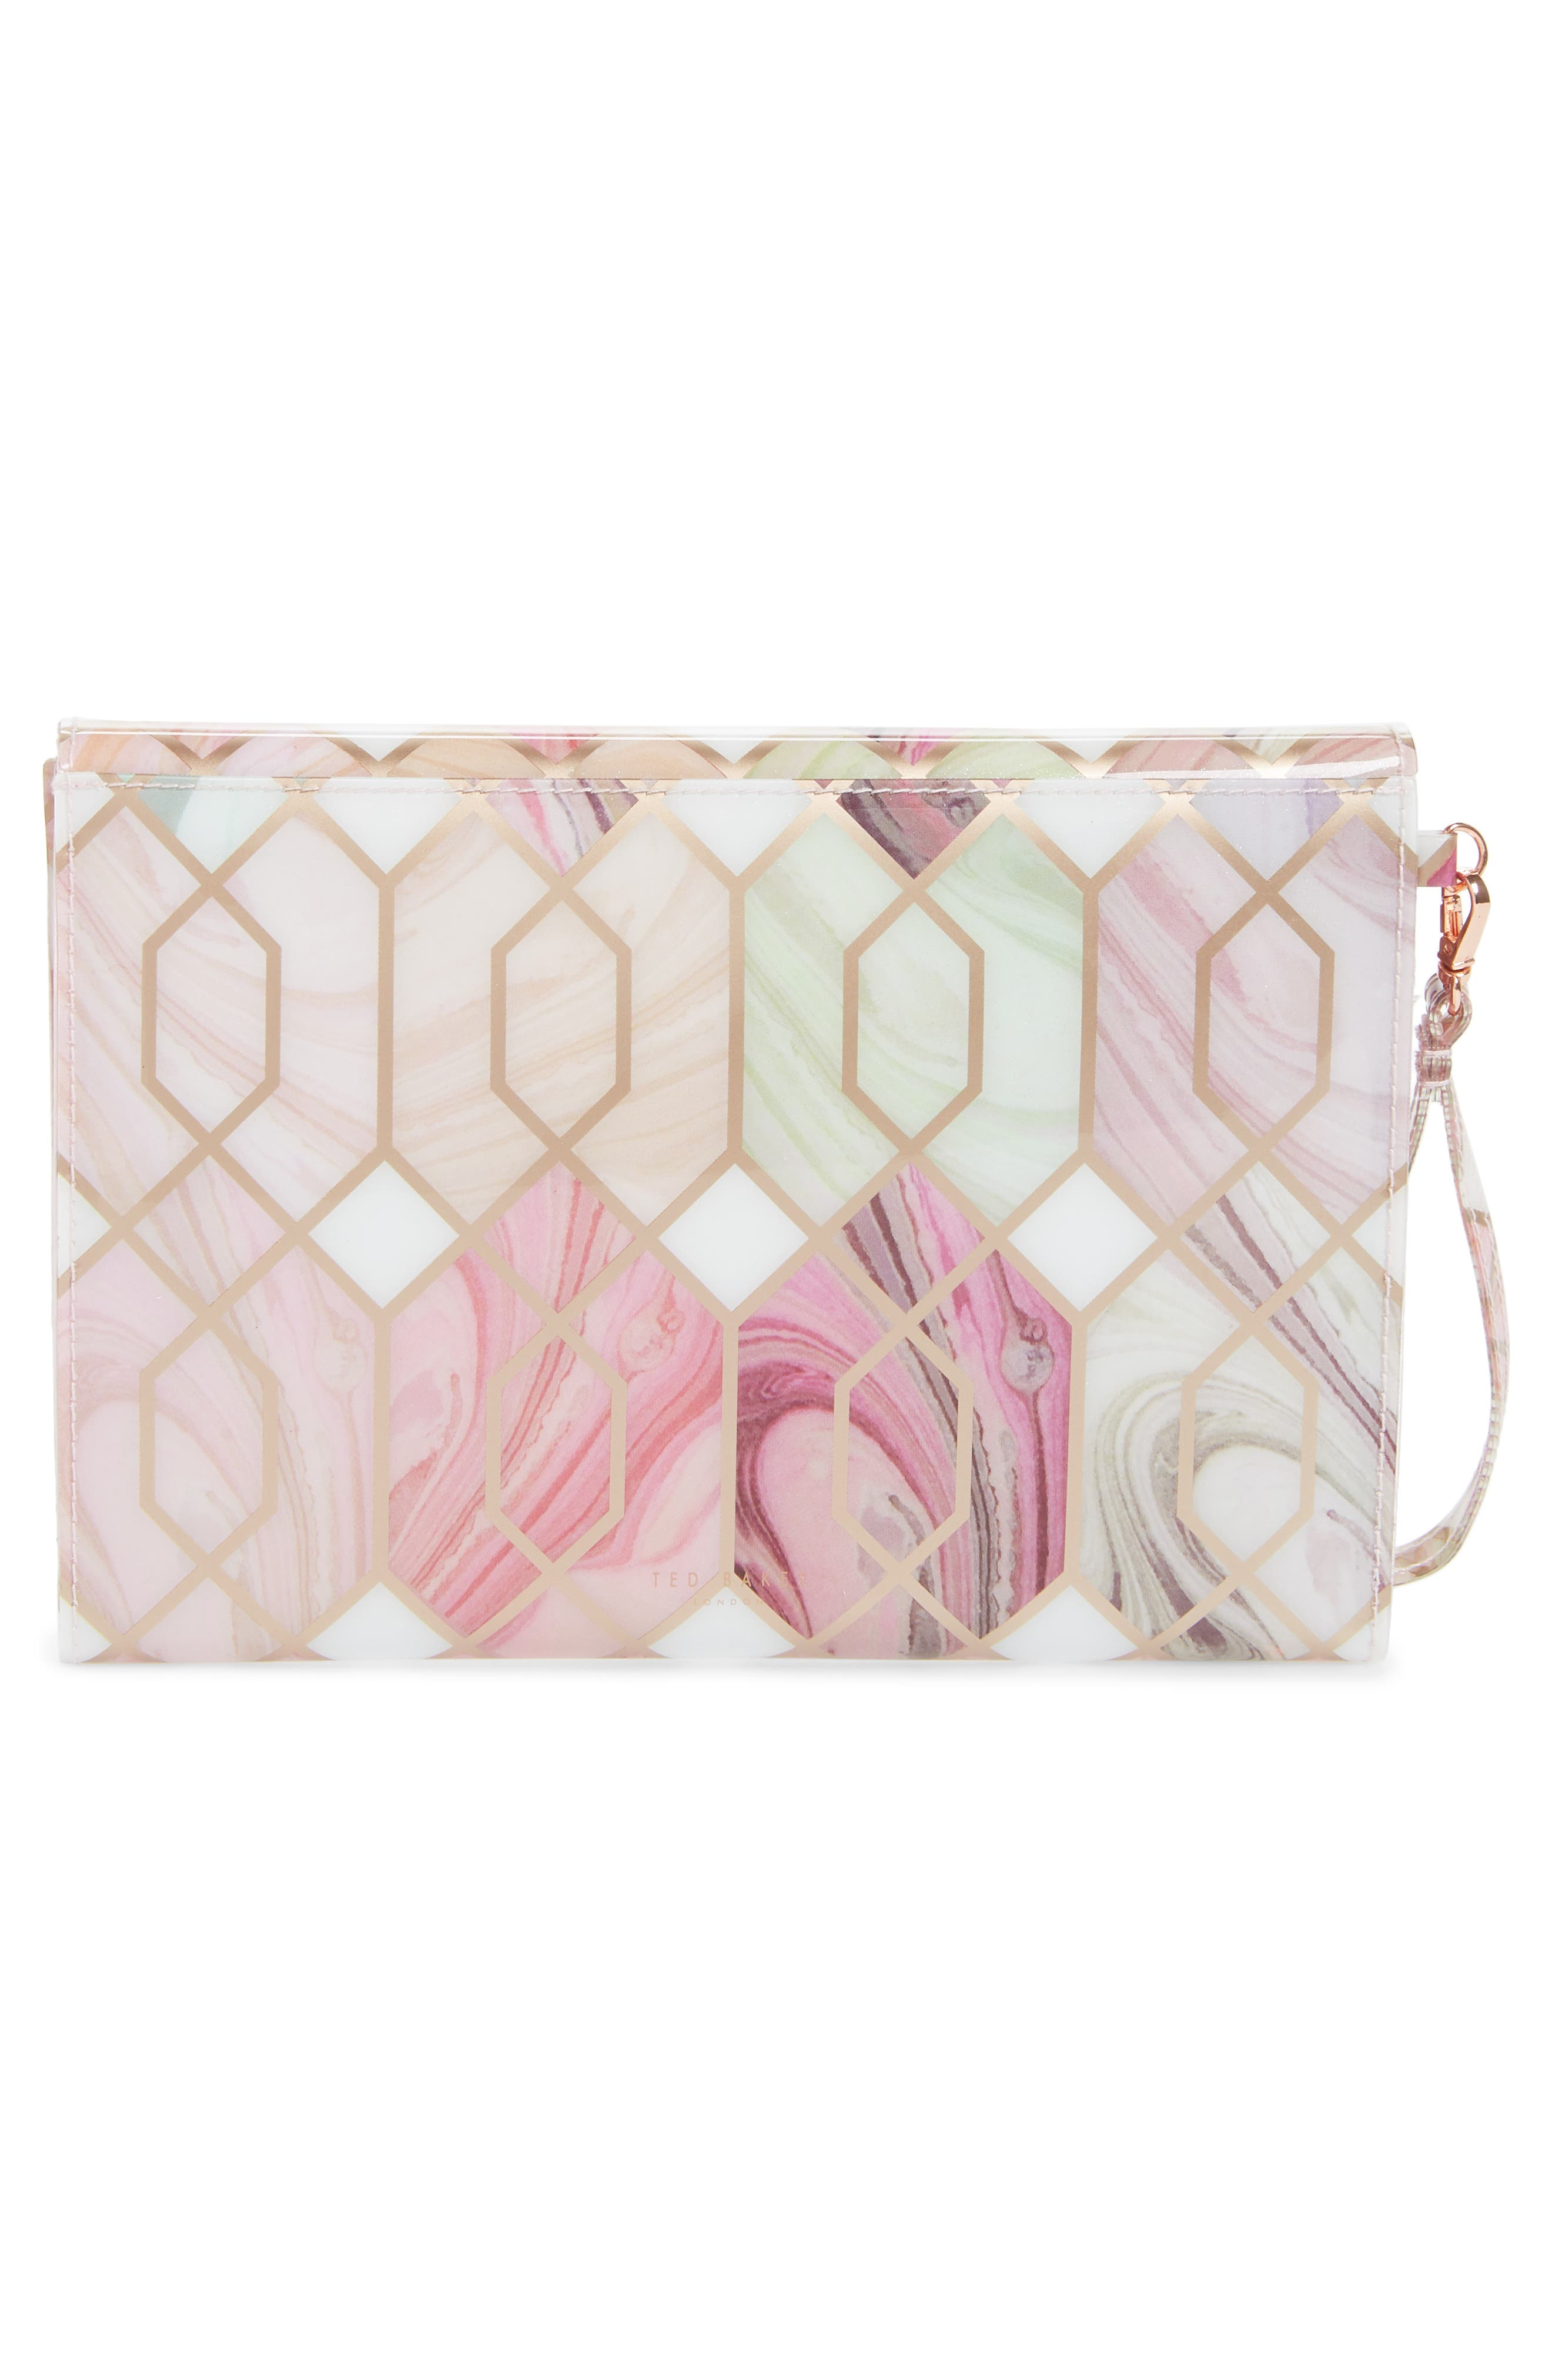 Sea of Clouds Envelope Clutch,                             Alternate thumbnail 3, color,                             110